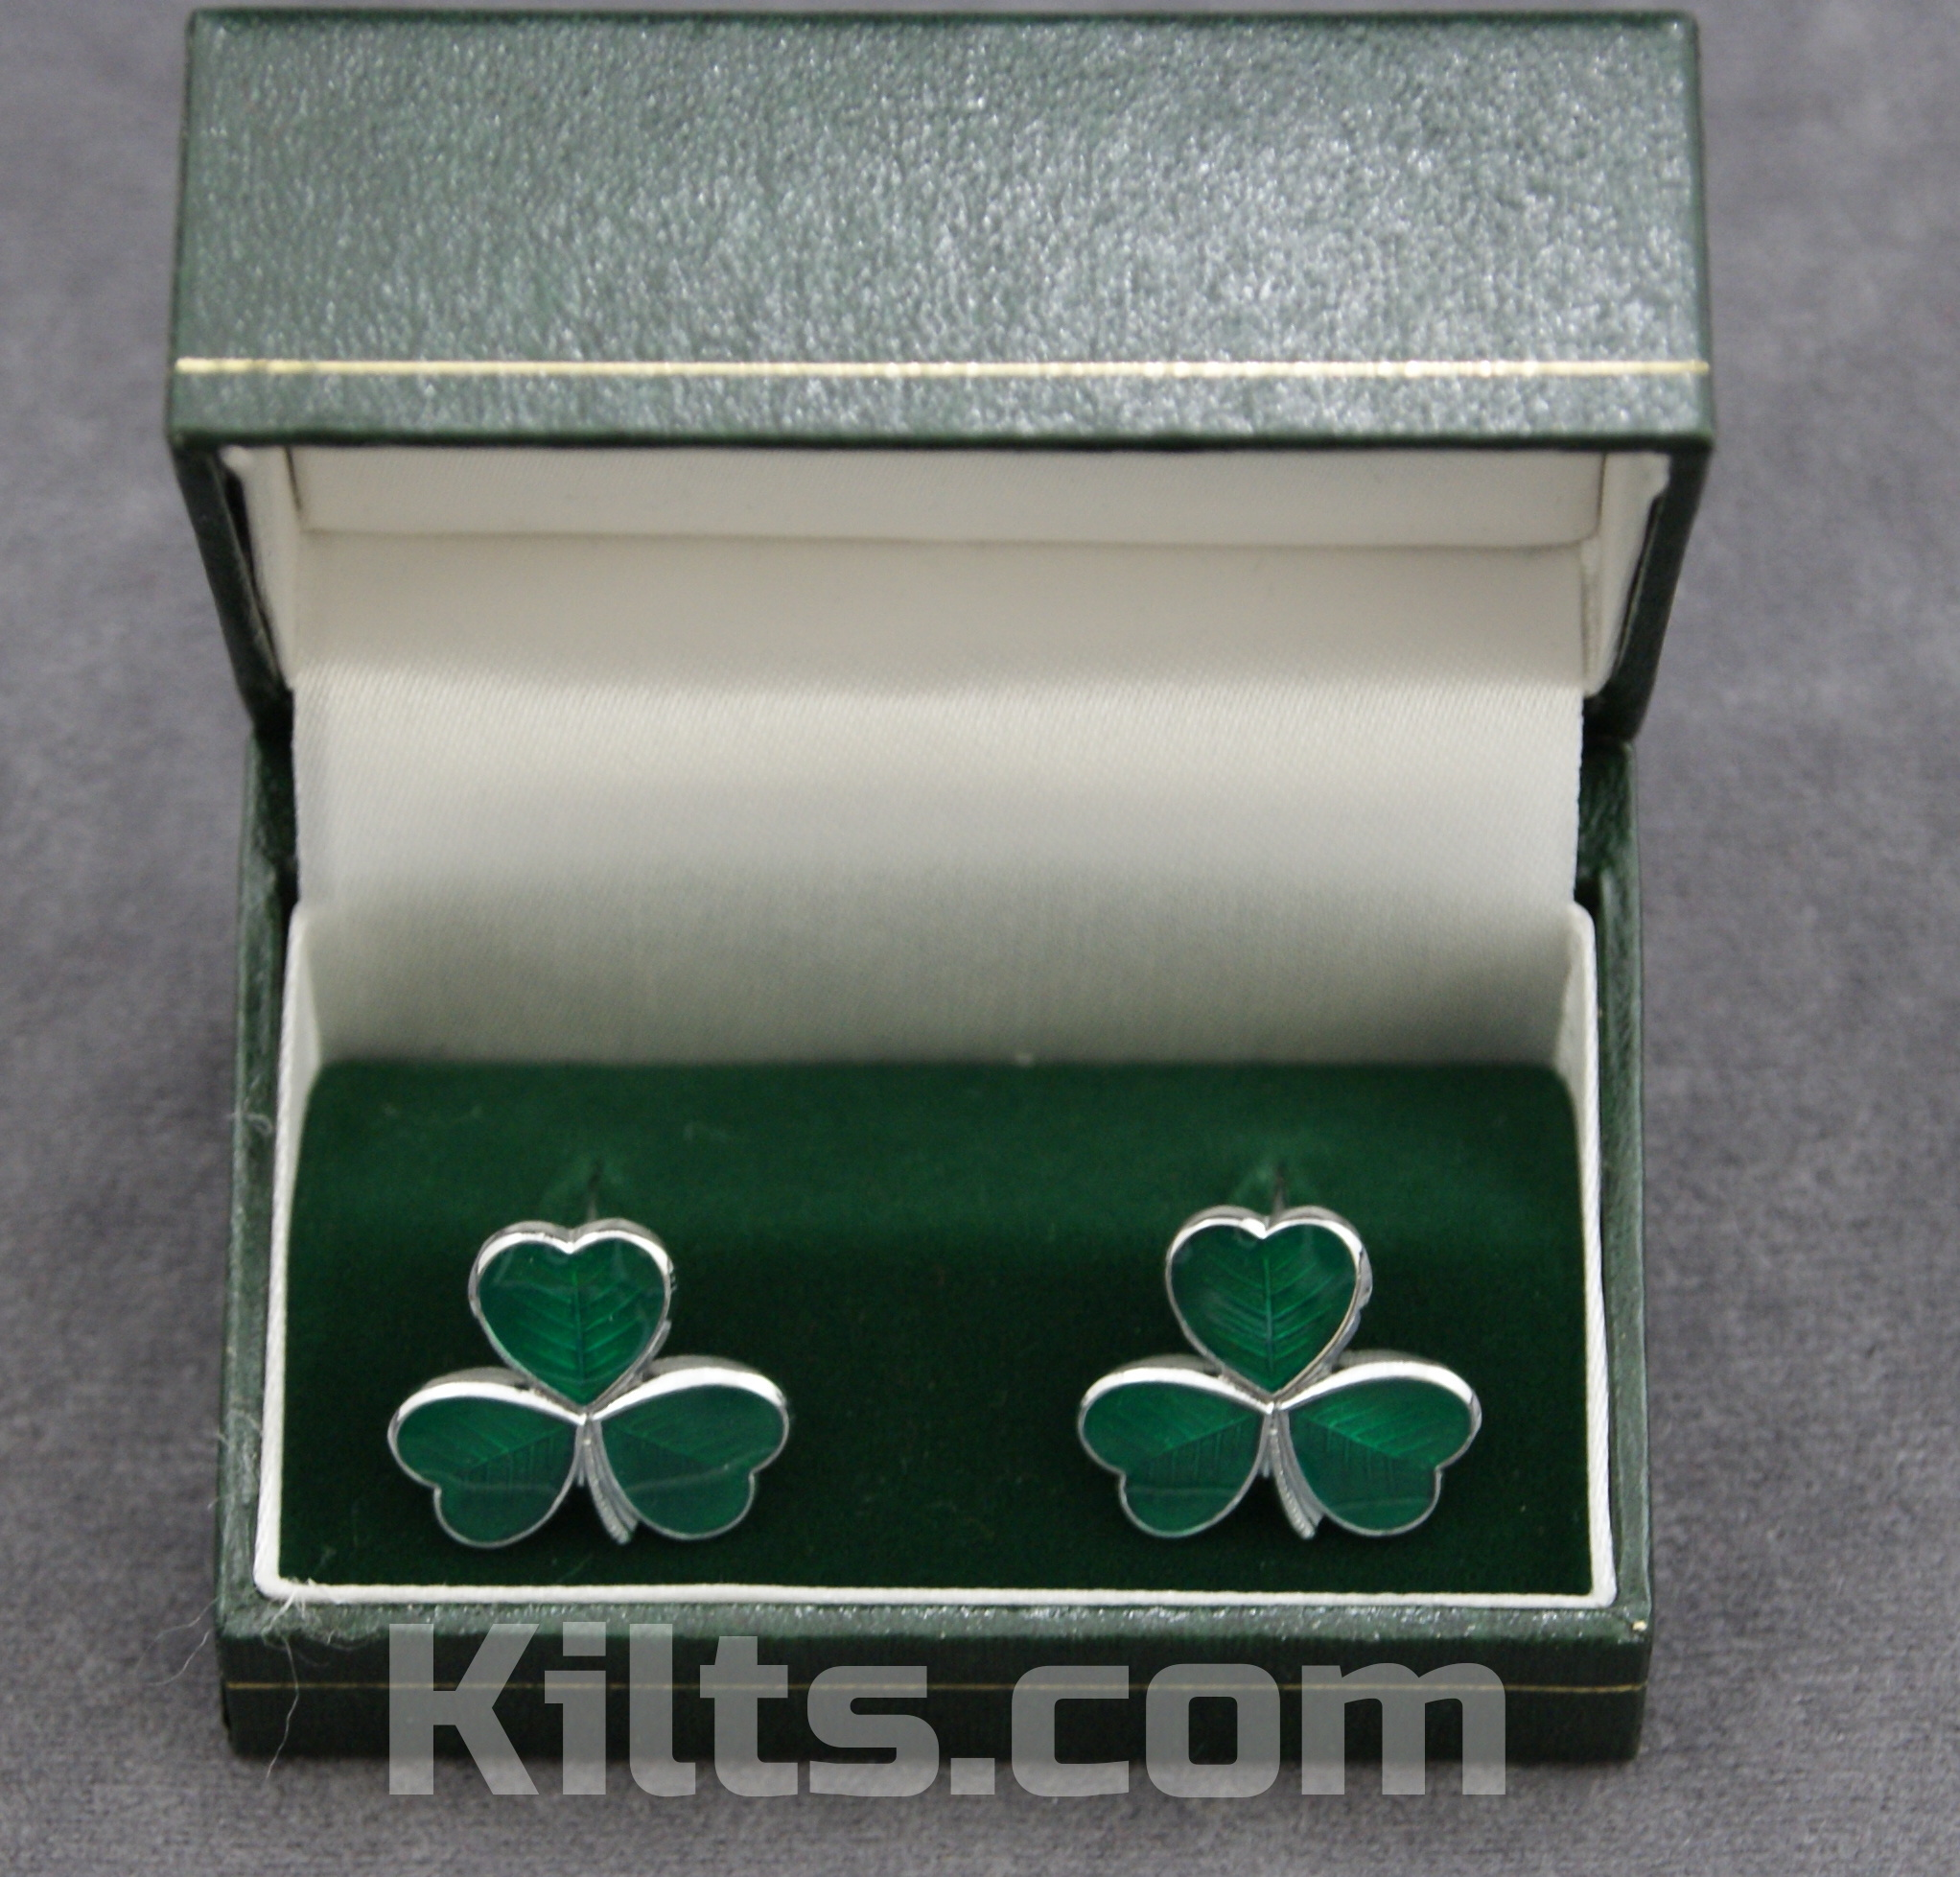 Check out our Irish Shamrock Cuff Links. If you are looking for Irish Cuff Links, you'll love these!